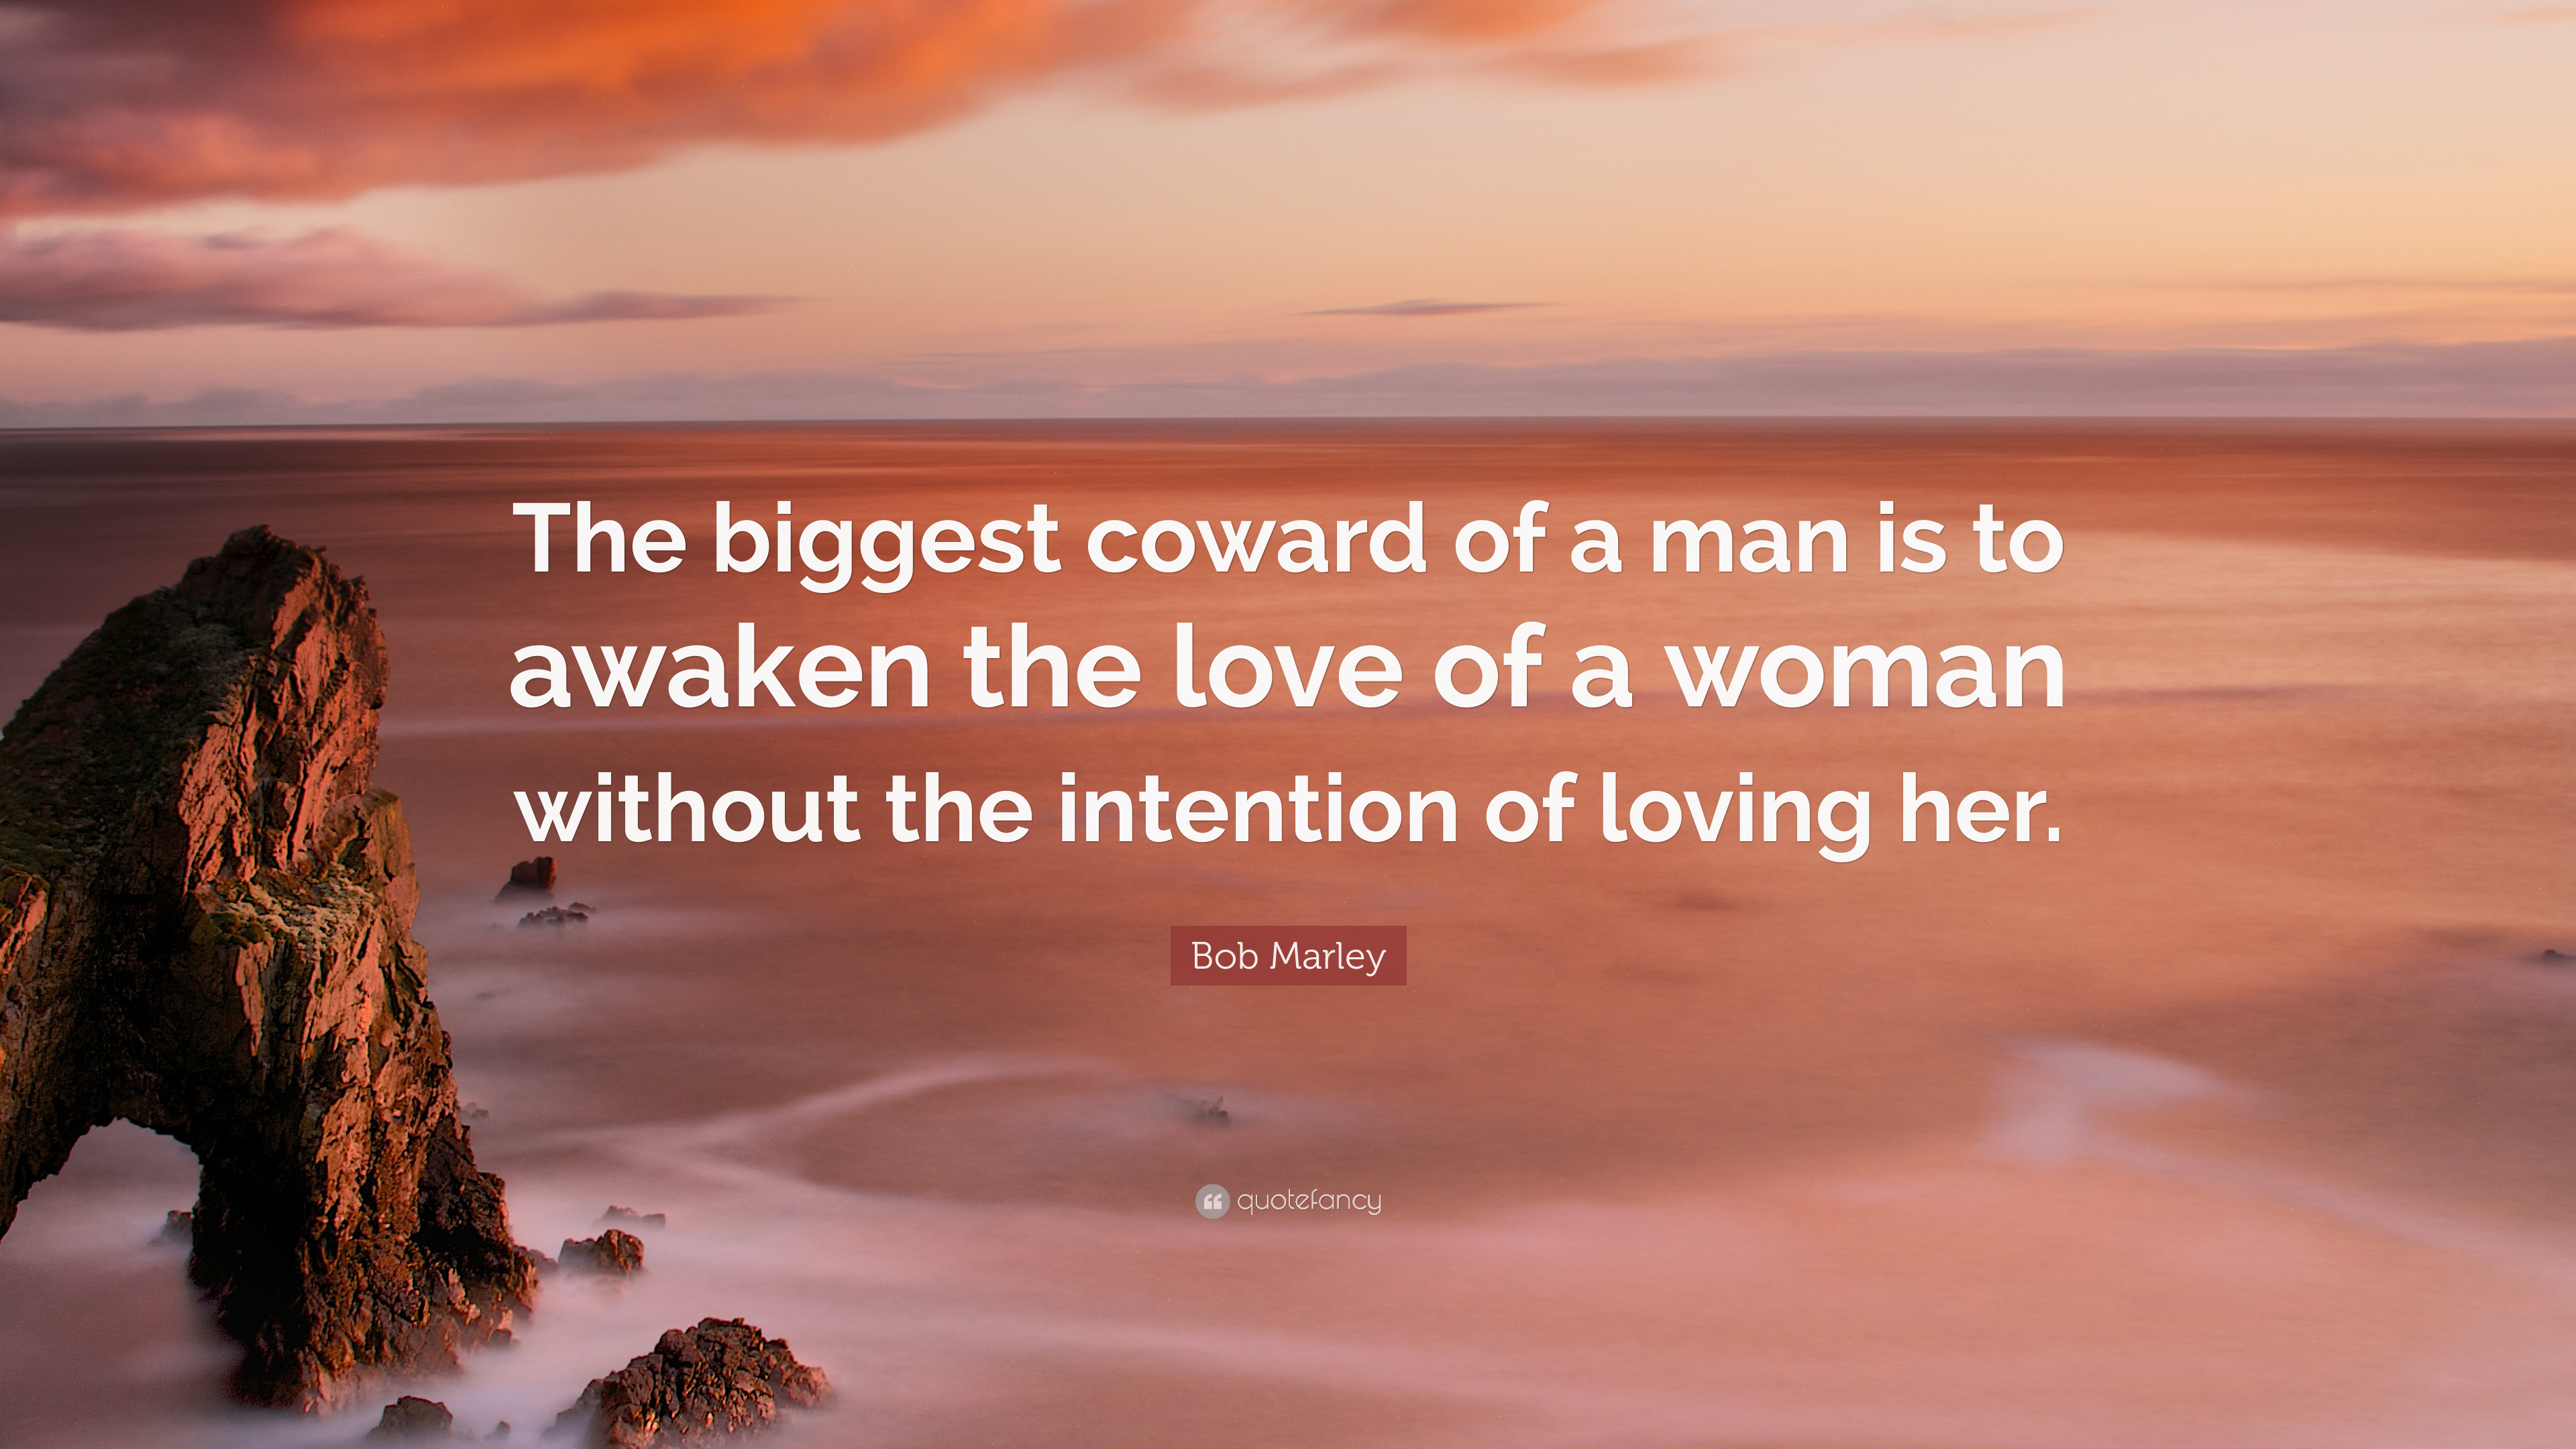 Bob Marley Quote: The biggest coward of a man is to